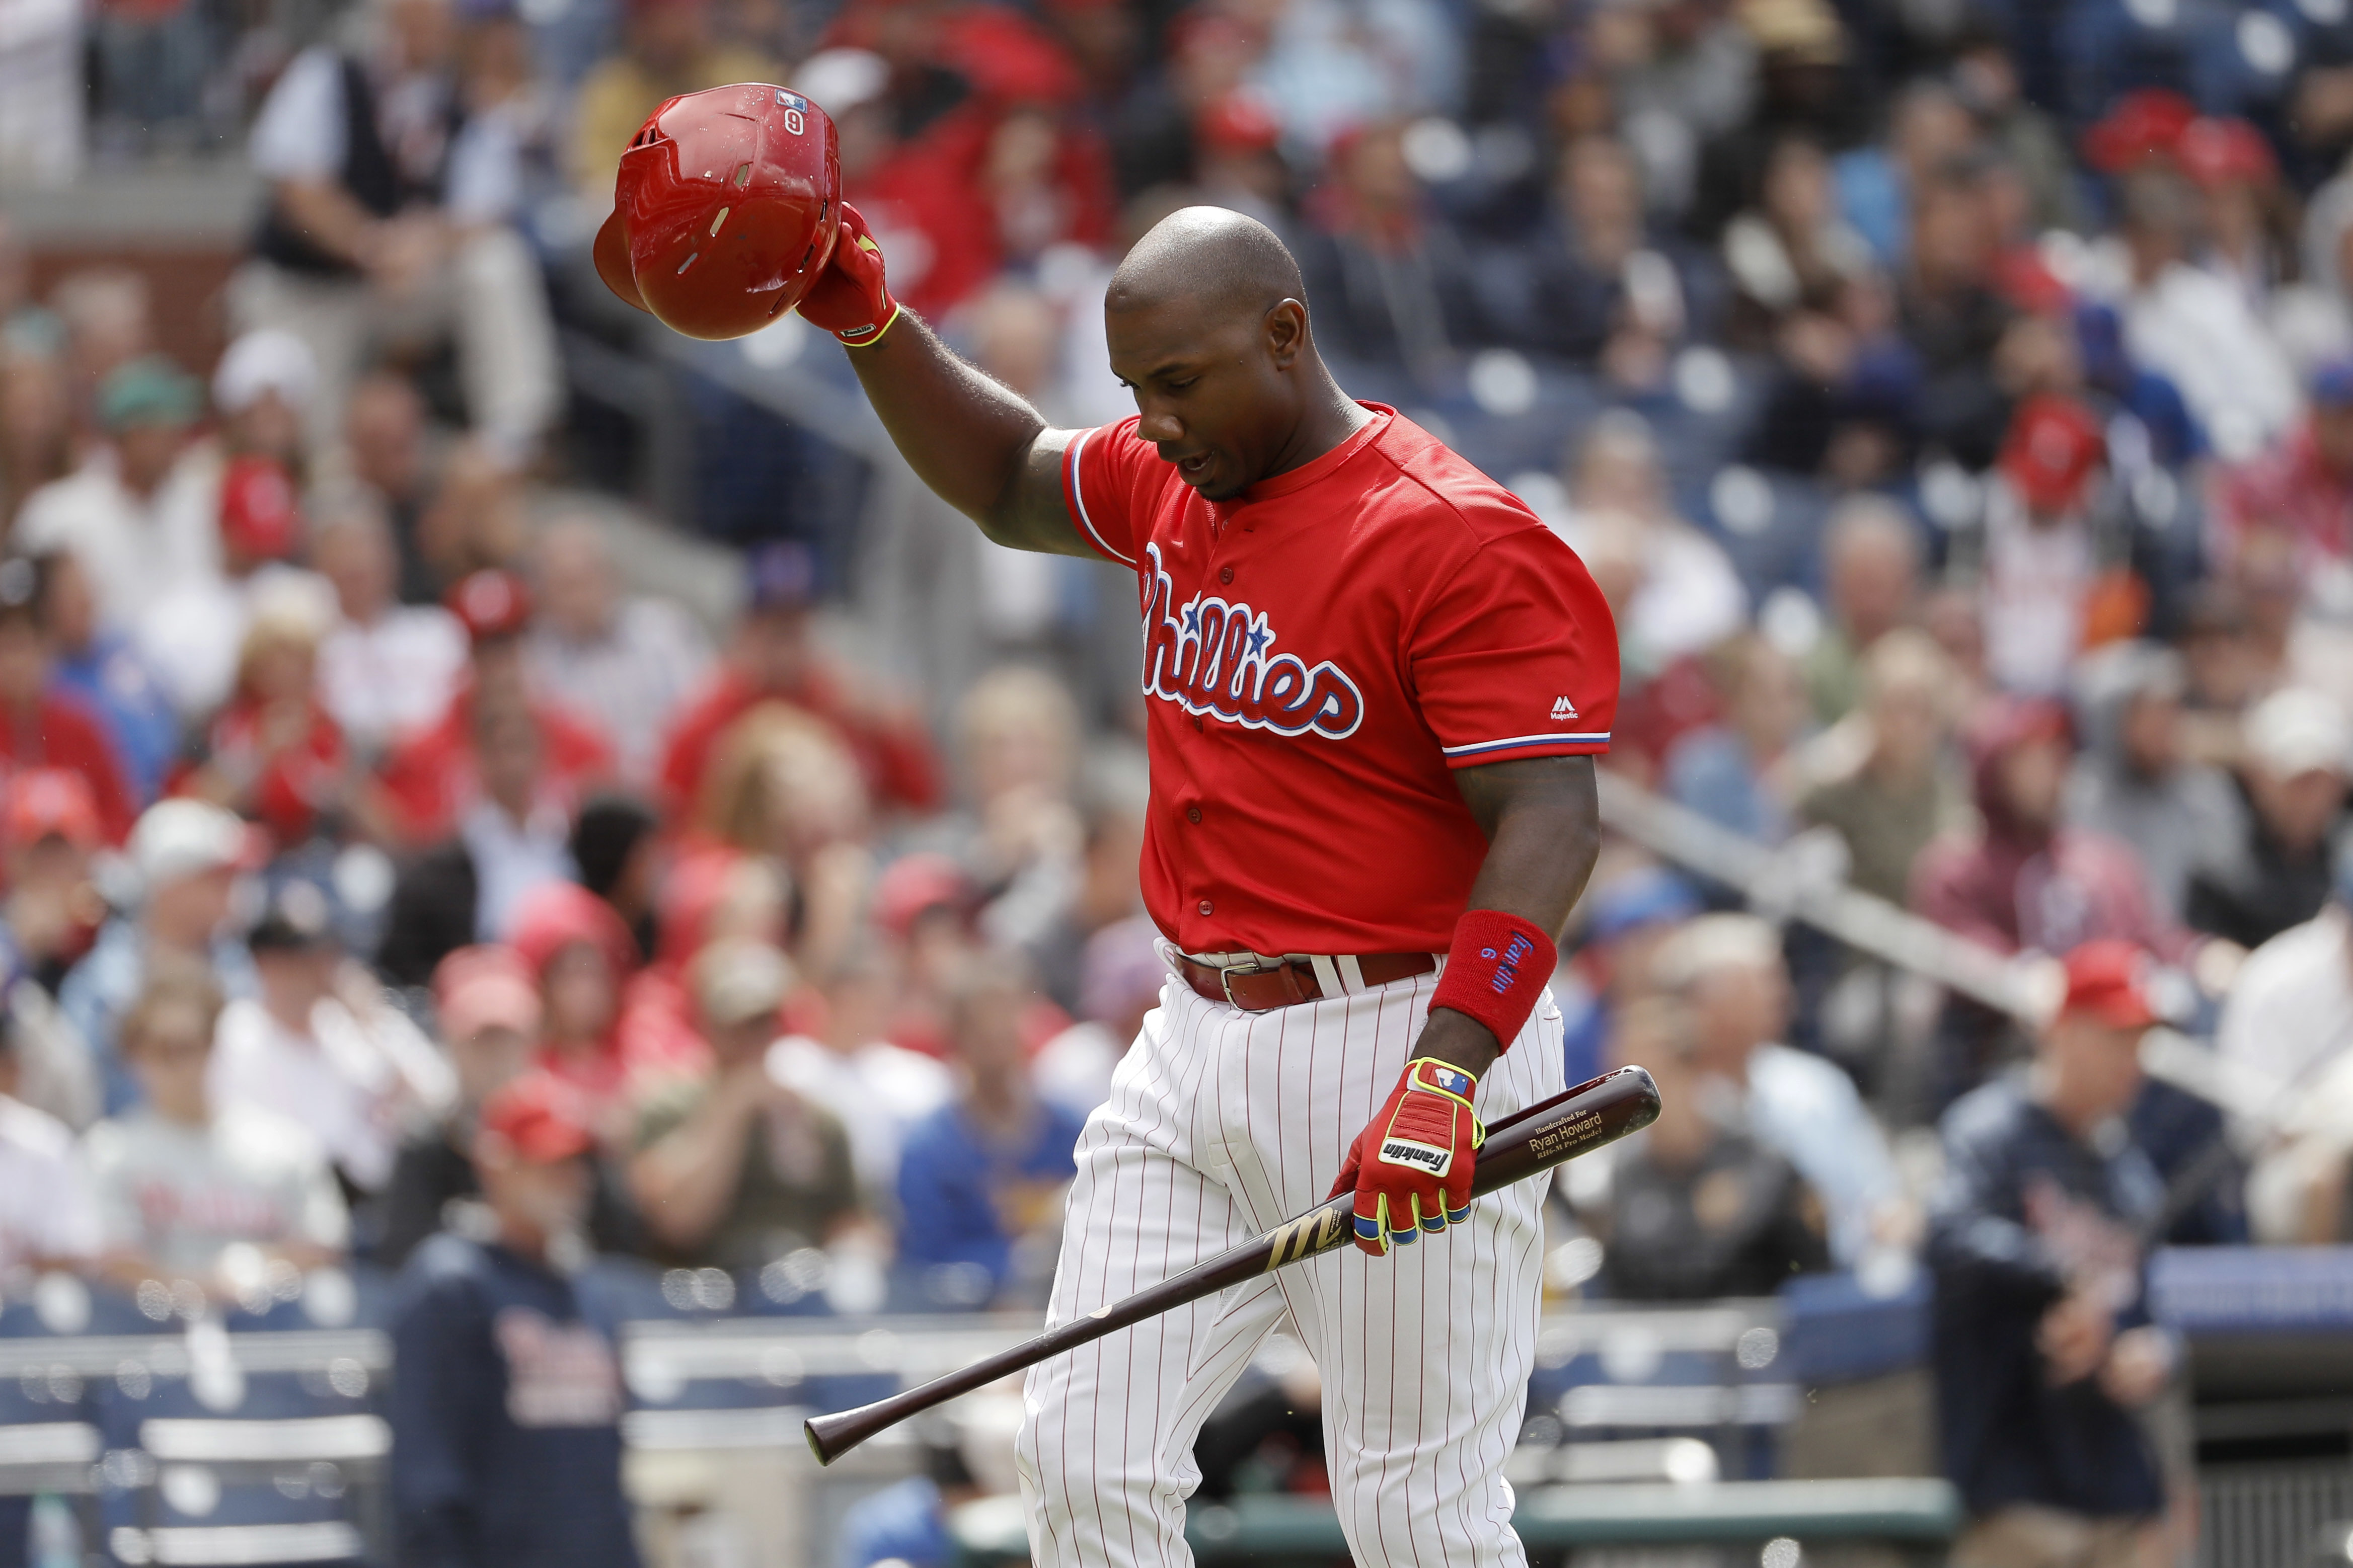 Philadelphia Phillies' Ryan Howard reacts after being struck out by Chicago Cubs' John Lackey during the seventh inning of a baseball game, Wednesday, June 8, 2016, in Philadelphia. Chicago won 8-1. (AP Photo/Matt Slocum)